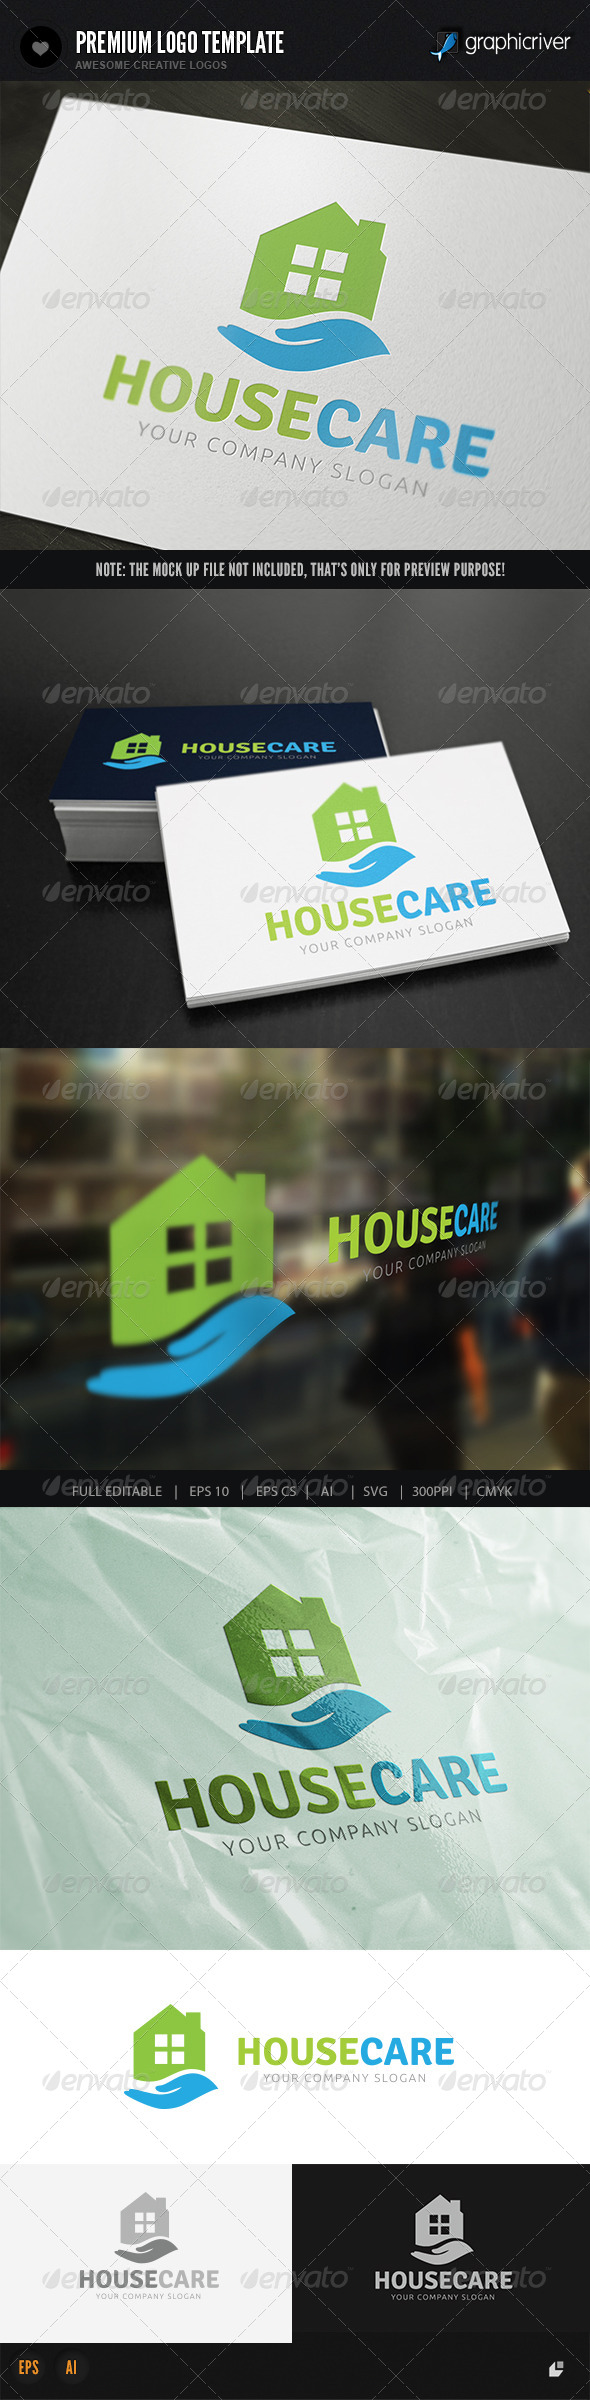 GraphicRiver House Care 8501245